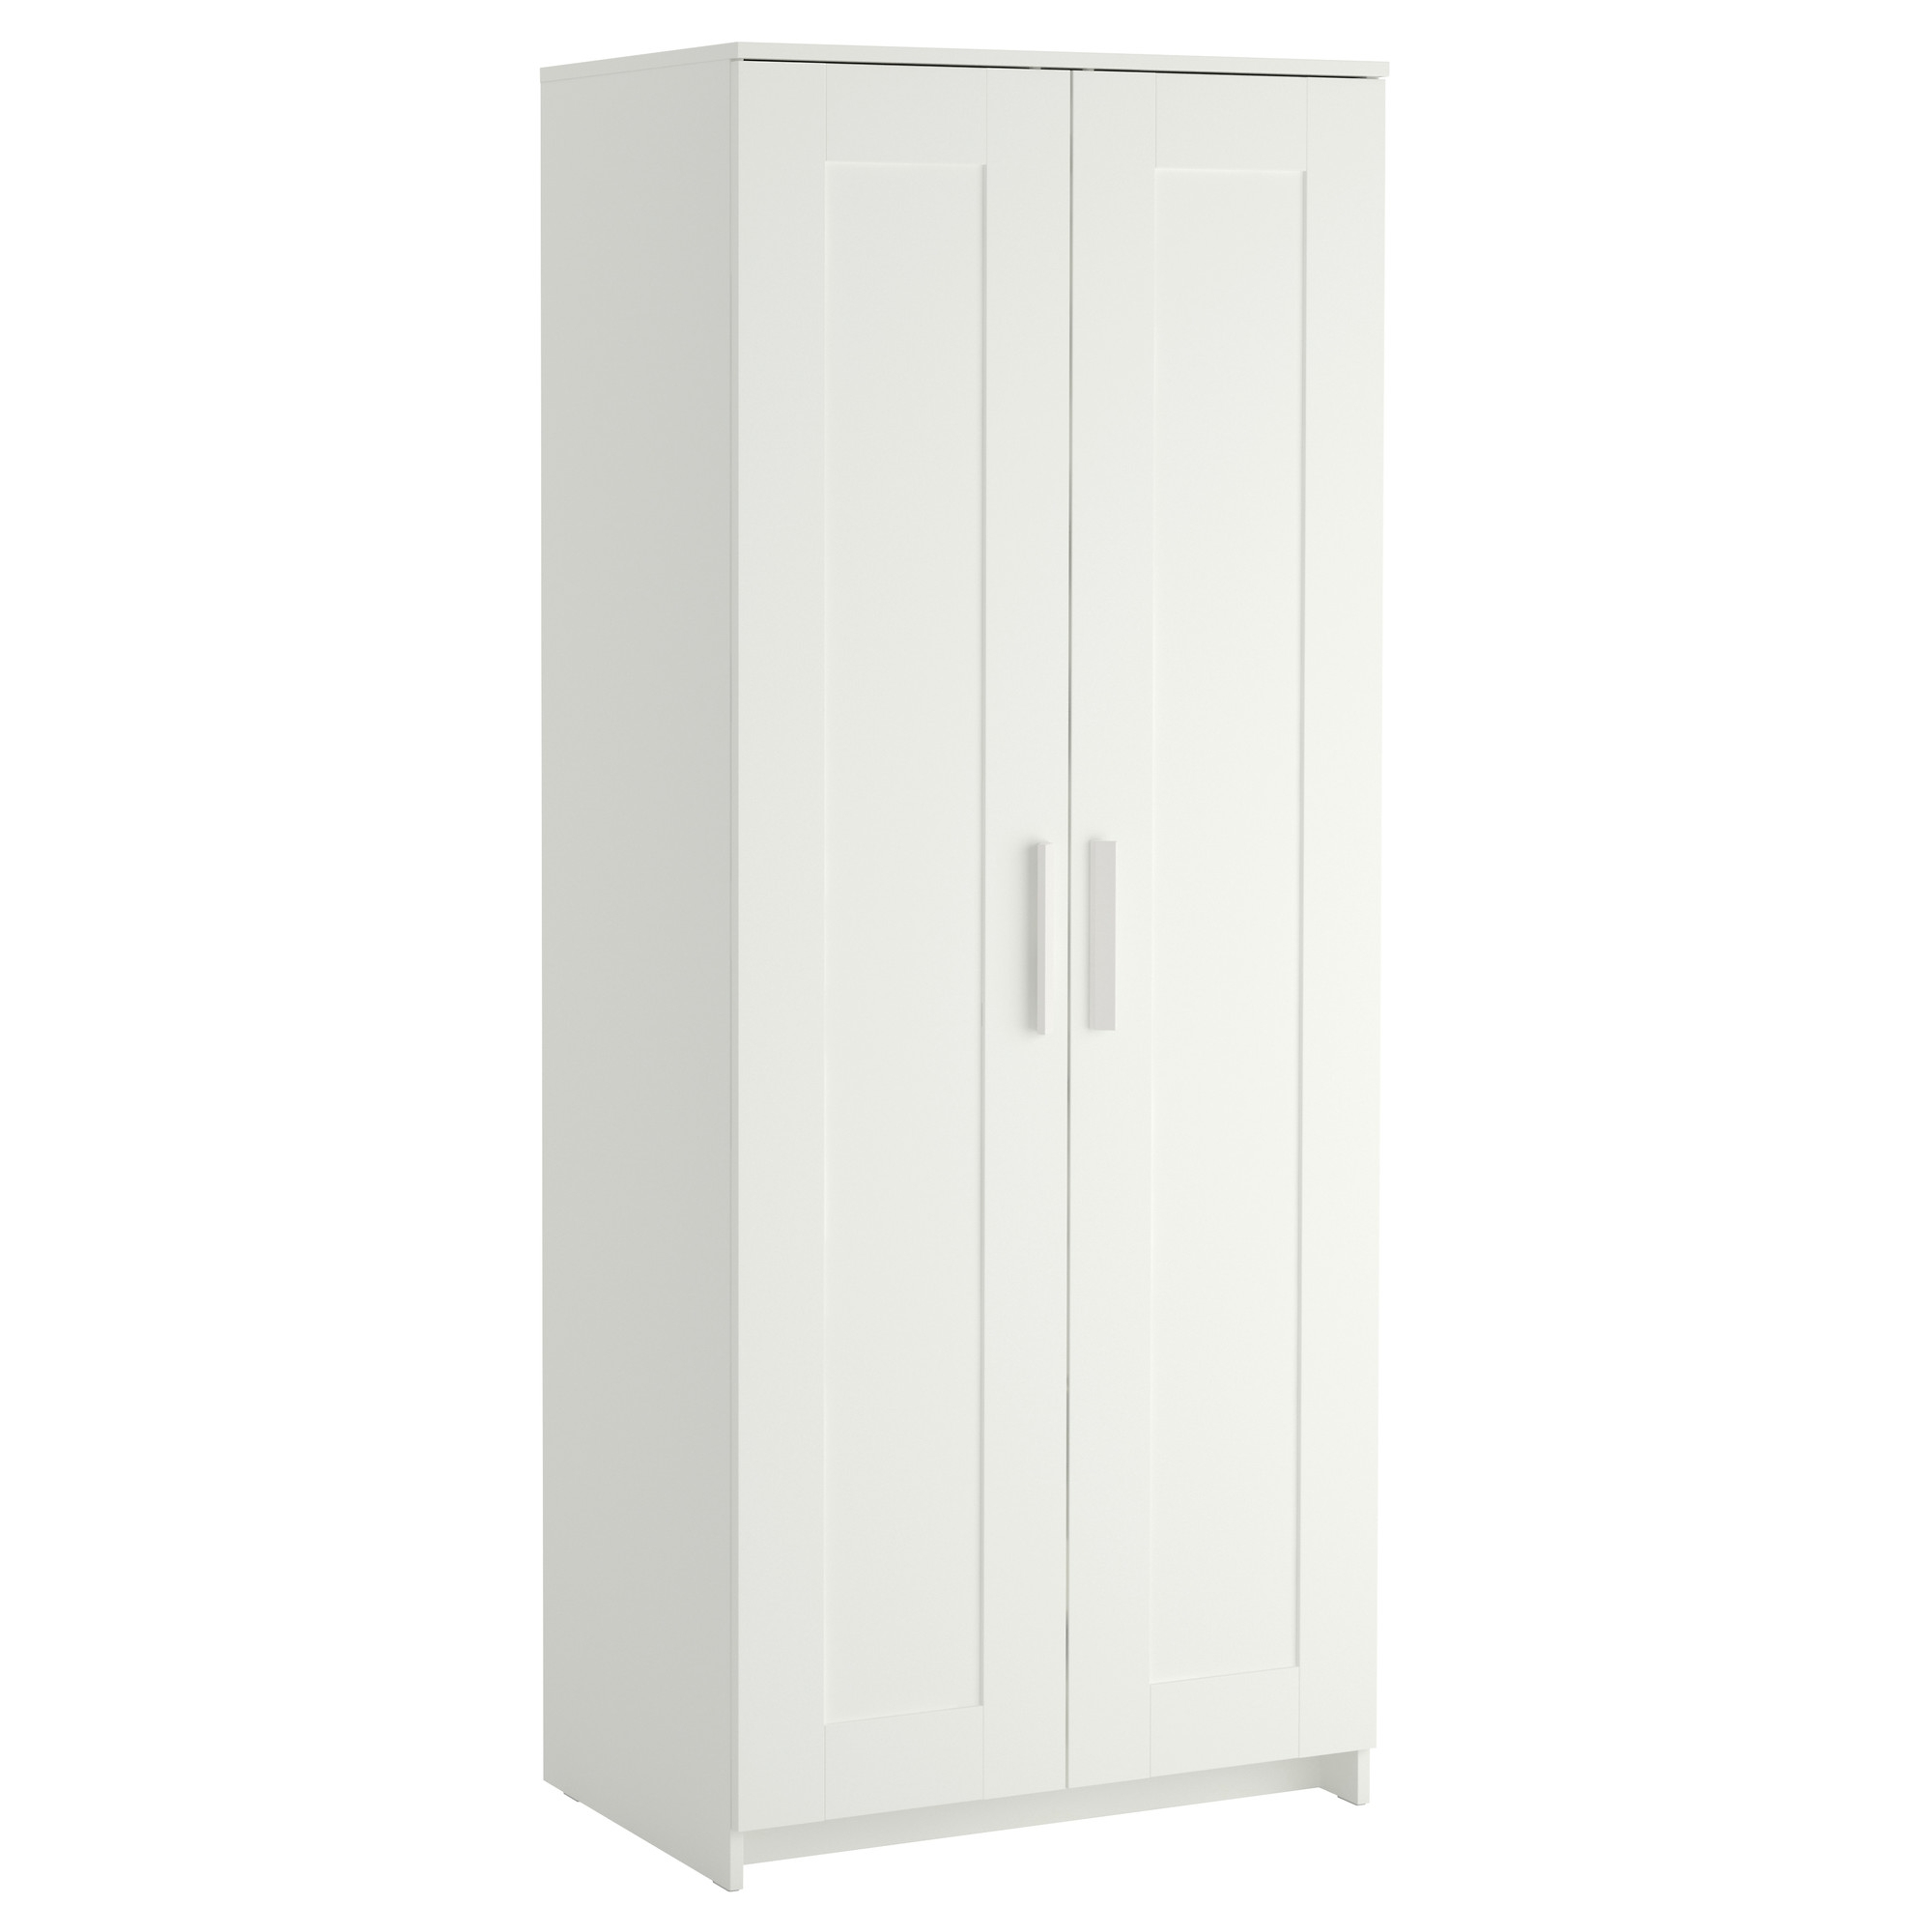 Most Current Tall Double Rail Wardrobes Pertaining To Brimnes Wardrobe With 2 Doors White 78X190 Cm – Ikea (View 2 of 15)